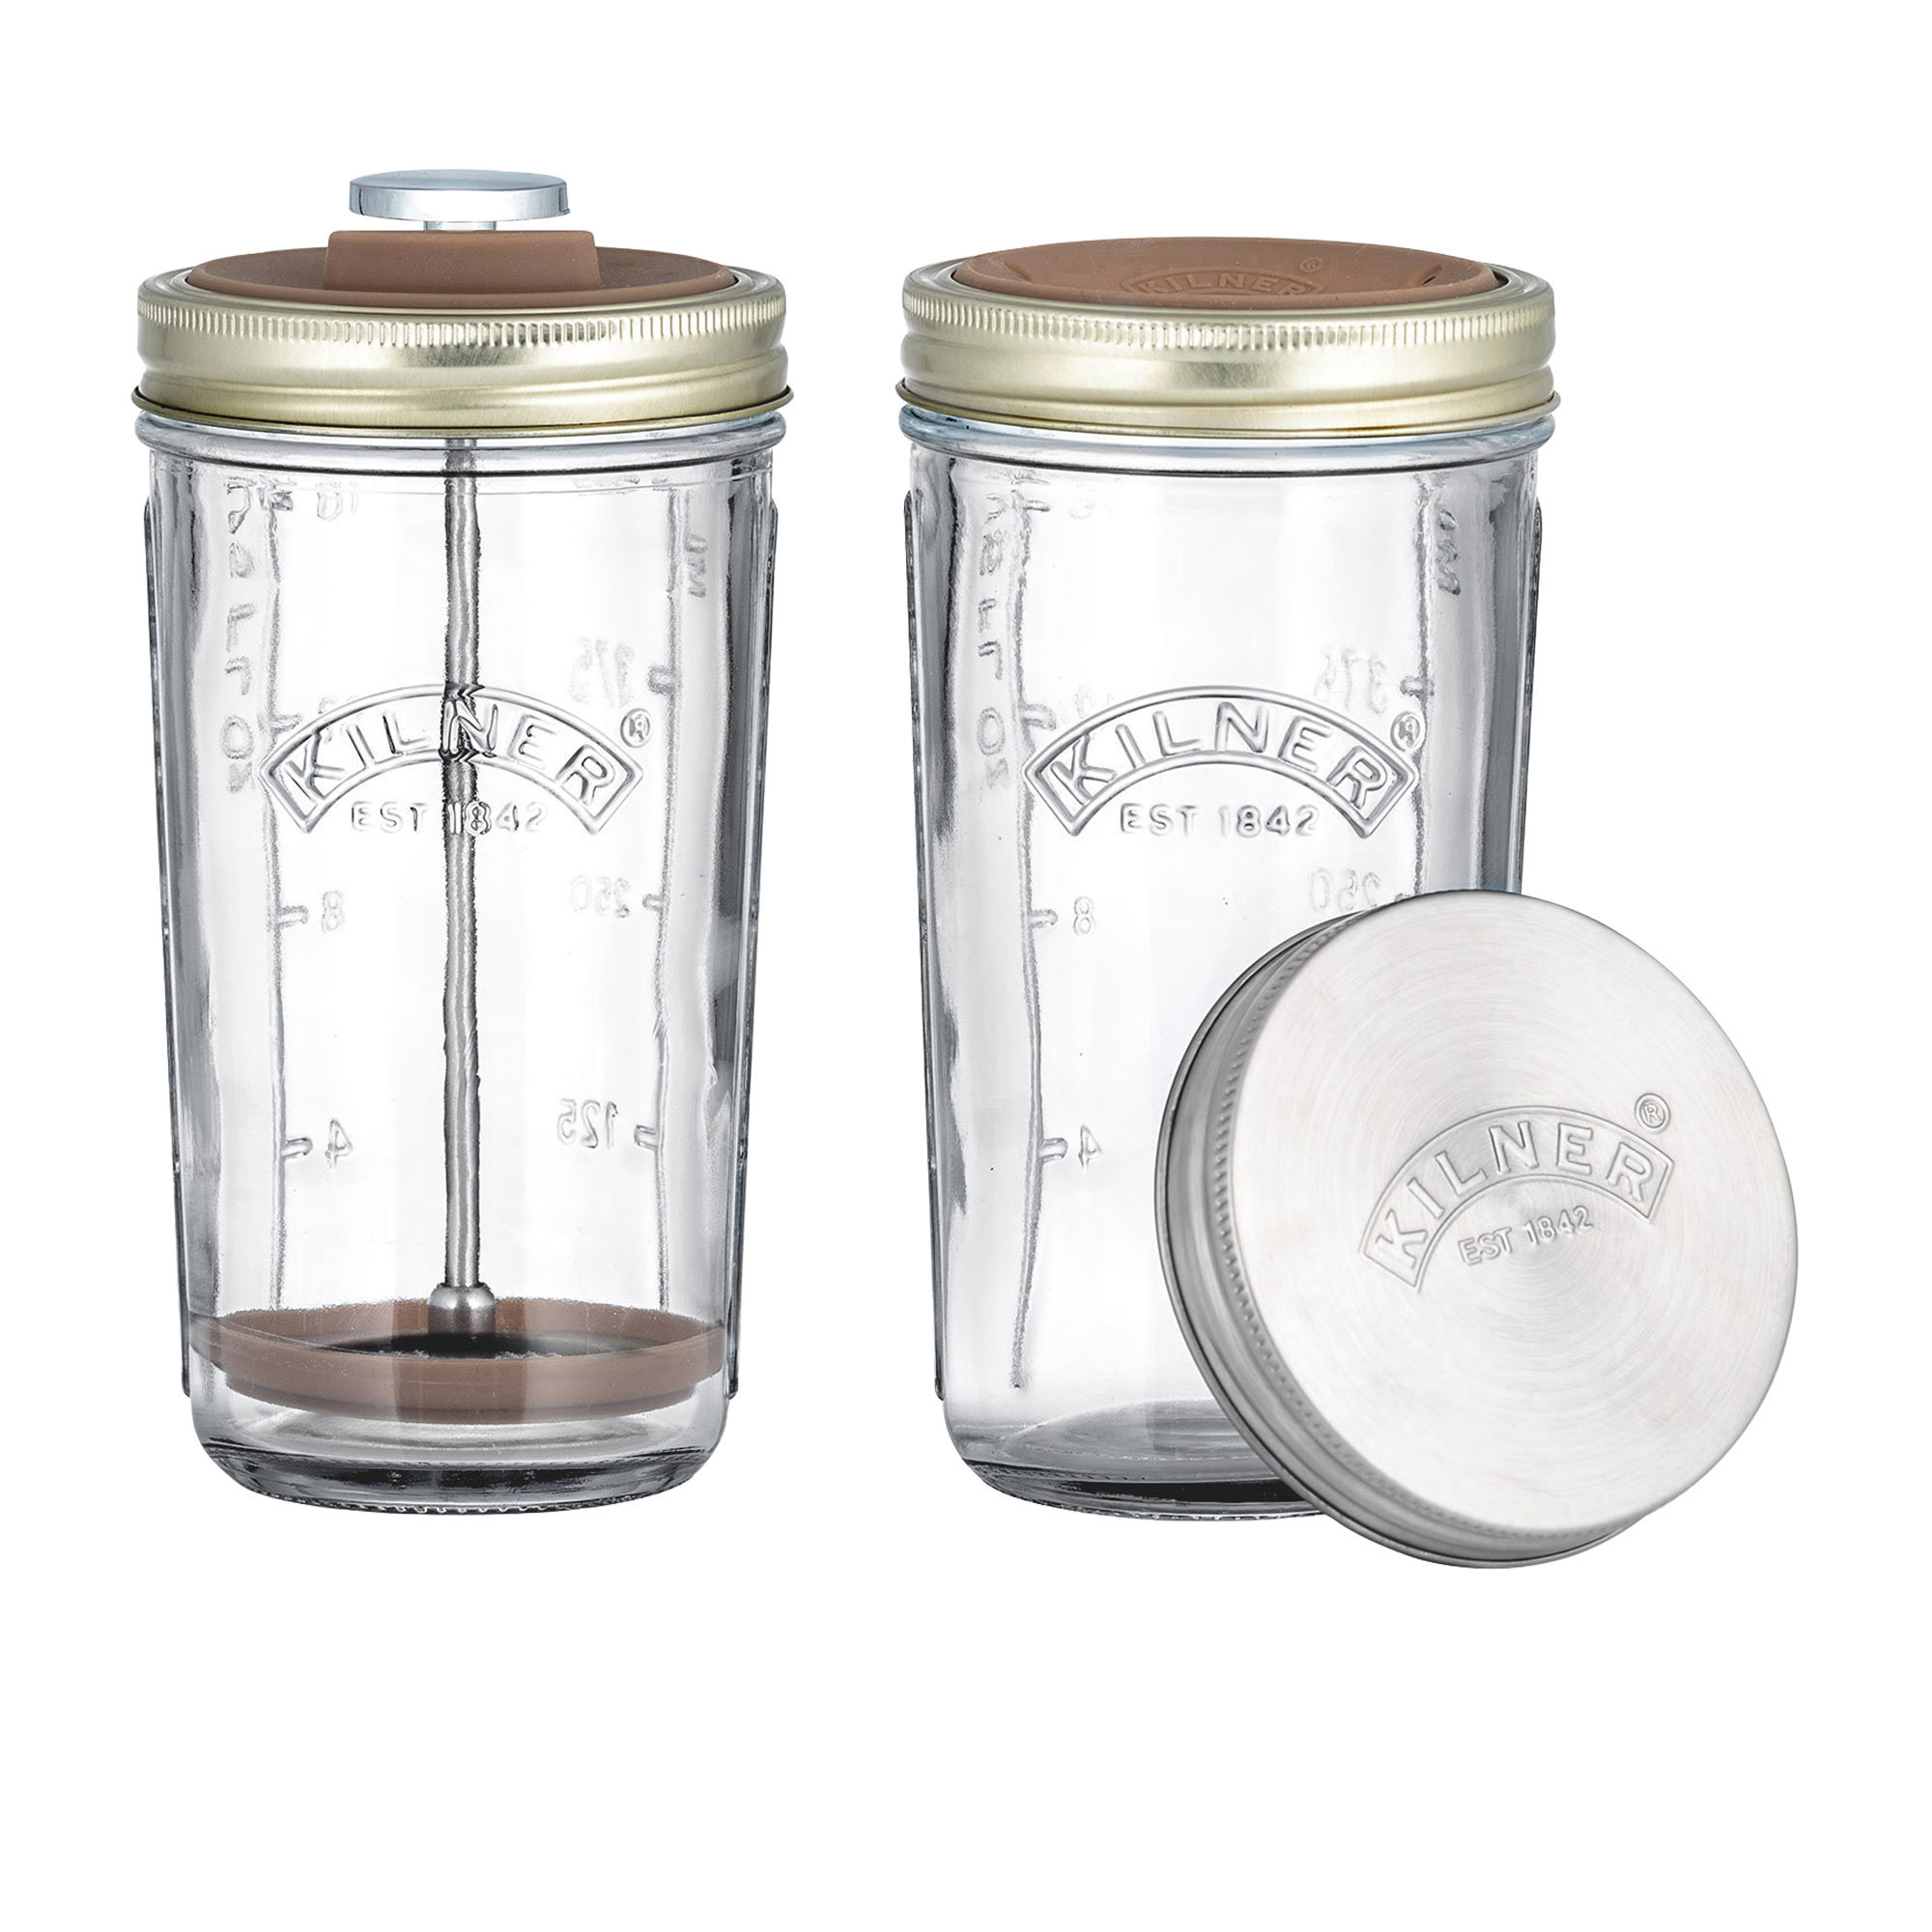 Kilner Create and Make Nut Drink Making Set 500ml